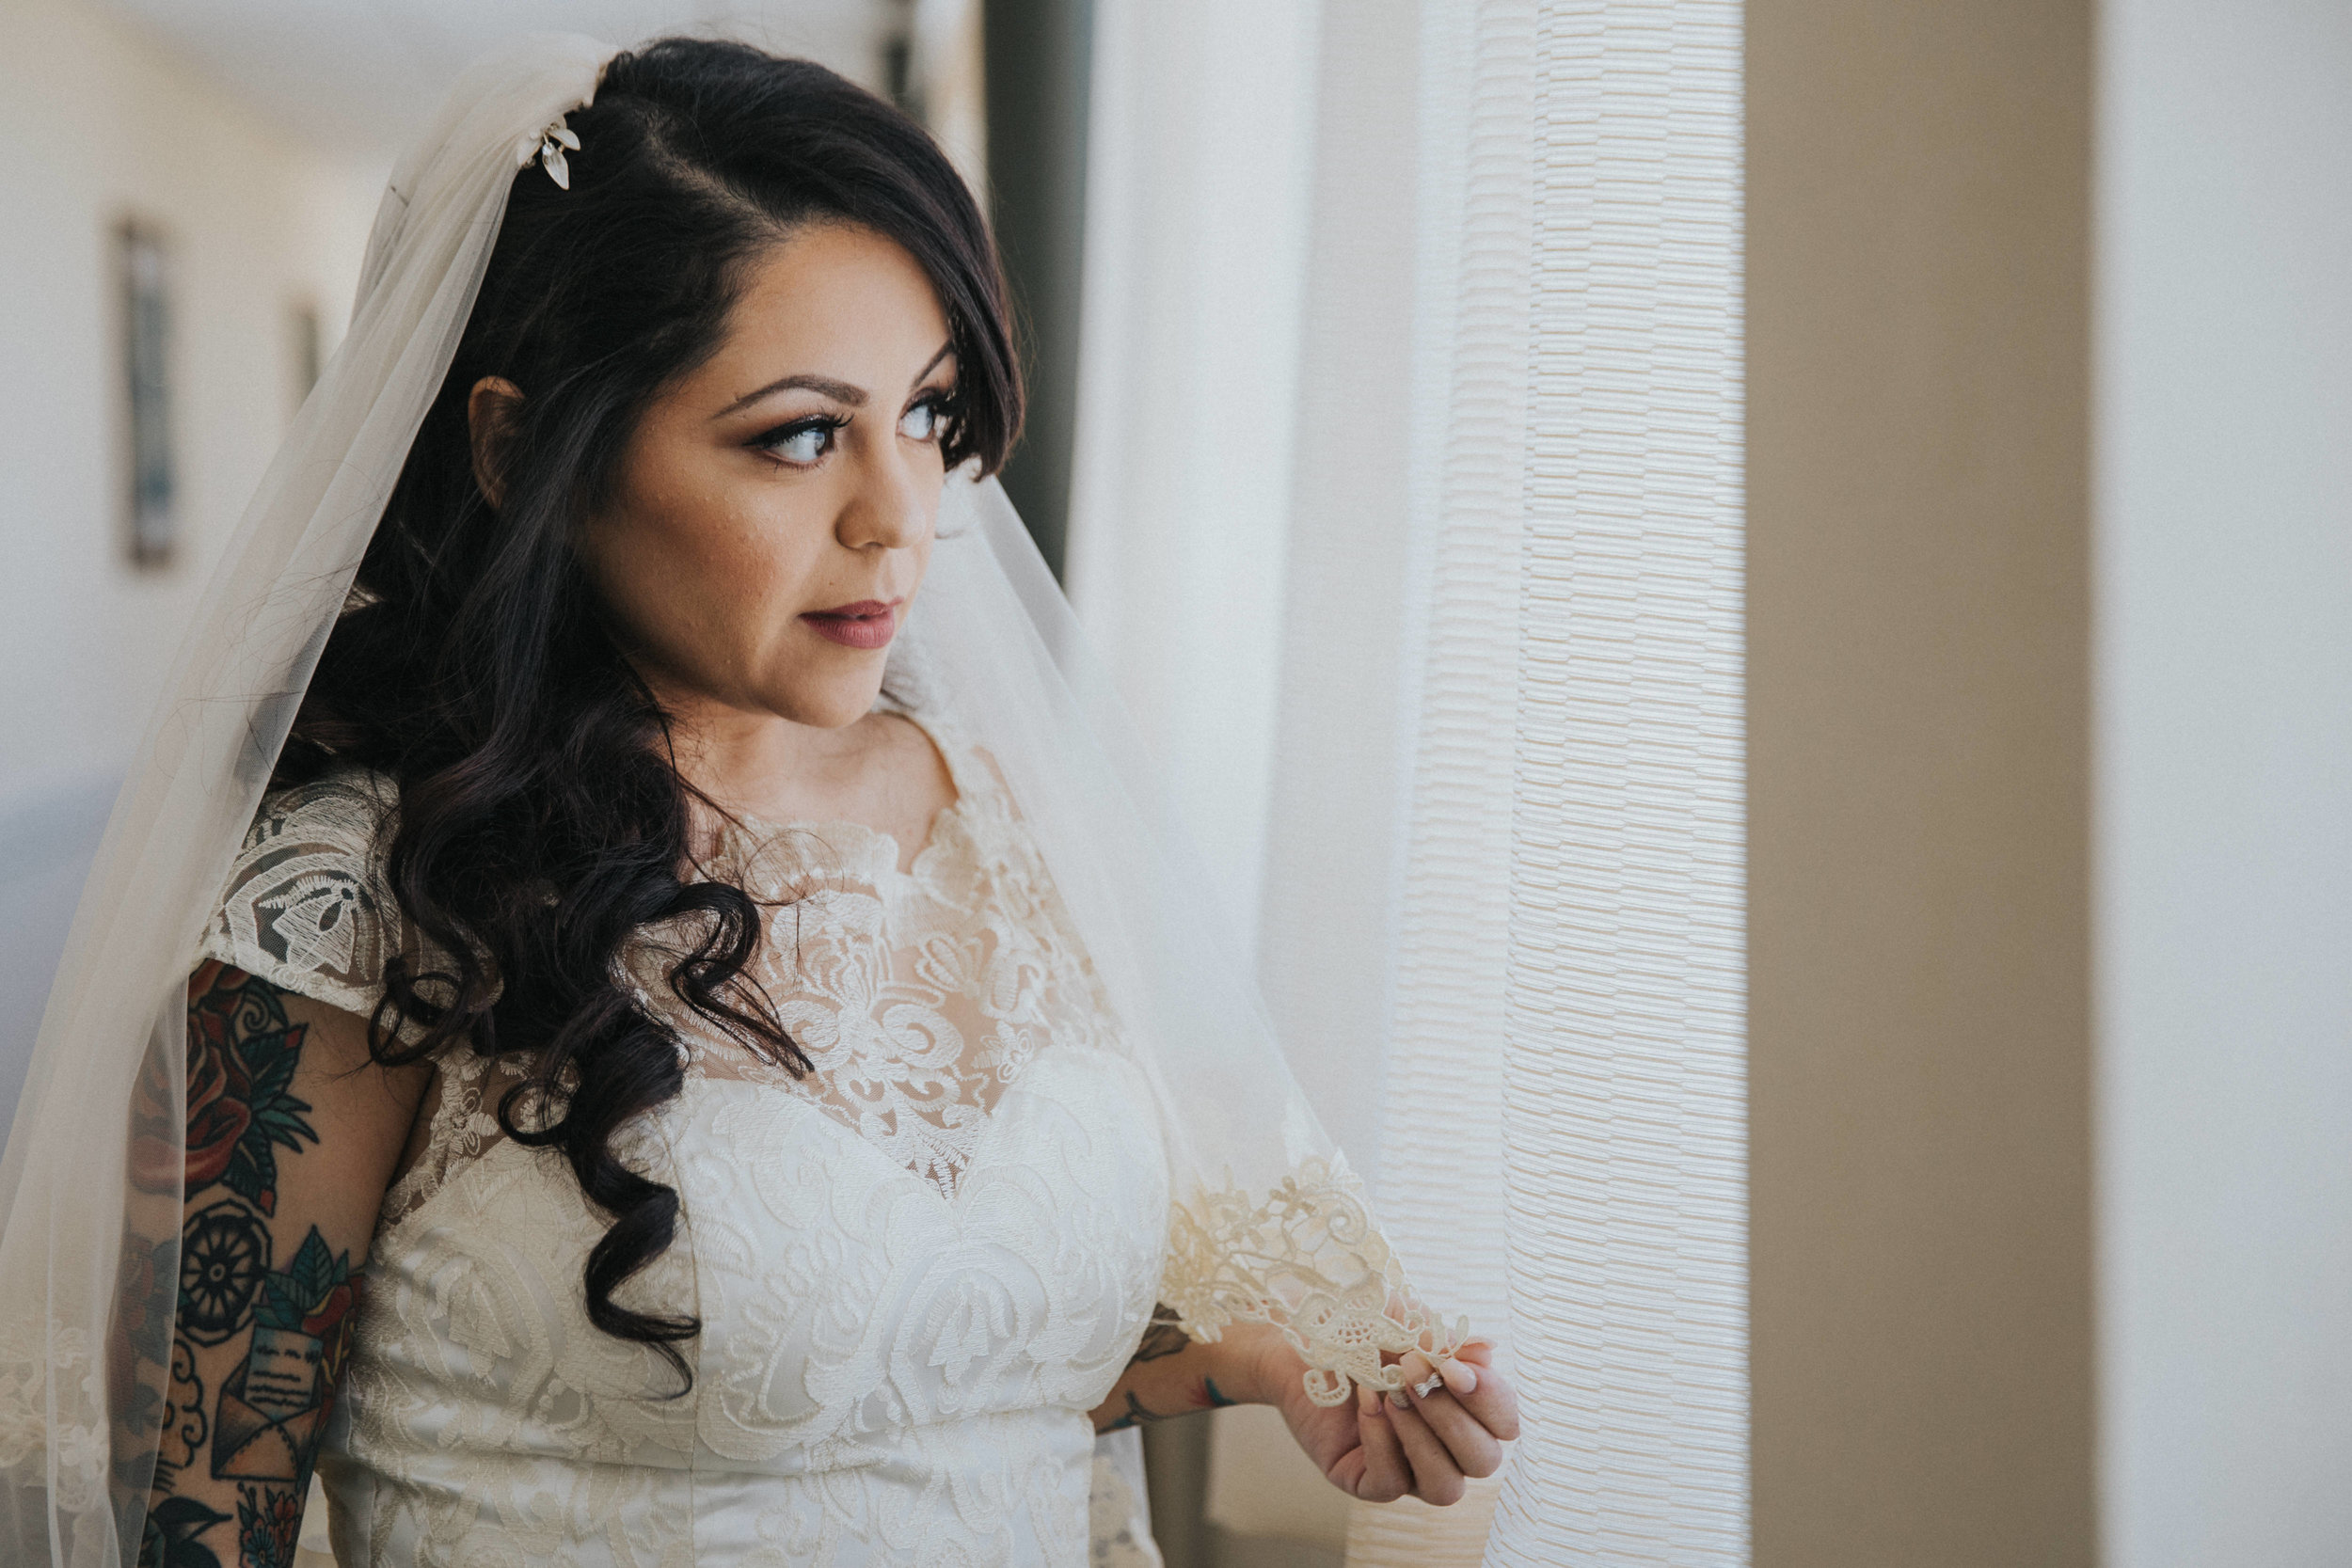 New-Jersey-Wedding-Photographer-ReceptionCenter-Valeria&Mike-Getting-Ready (72 of 76).jpg